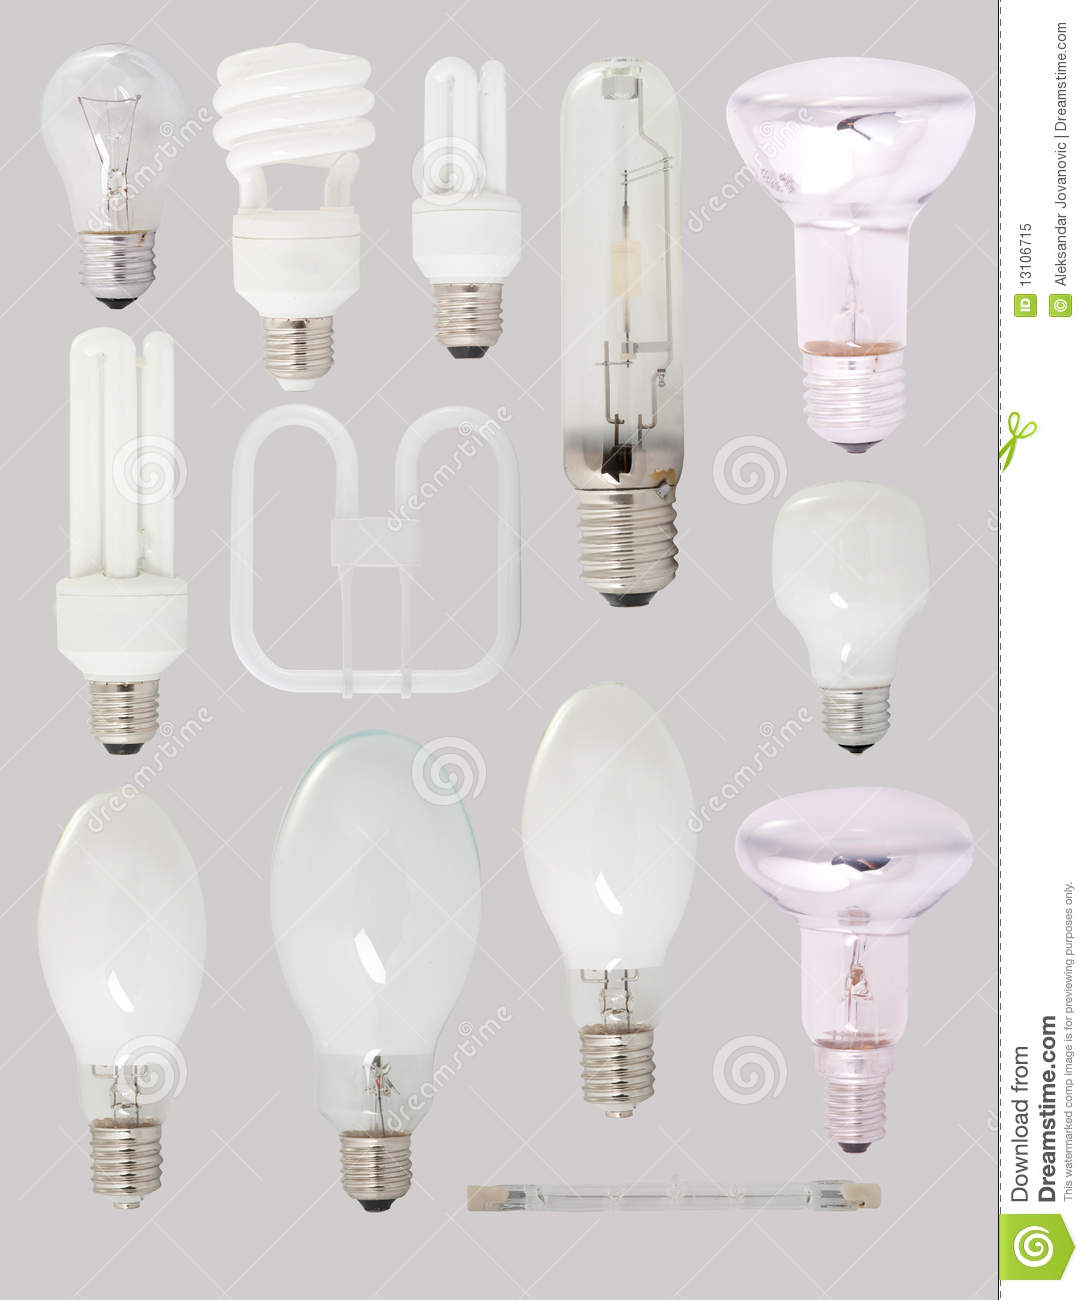 Different types of bulbs royalty free stock photo image 13106715 Lamp bulb types